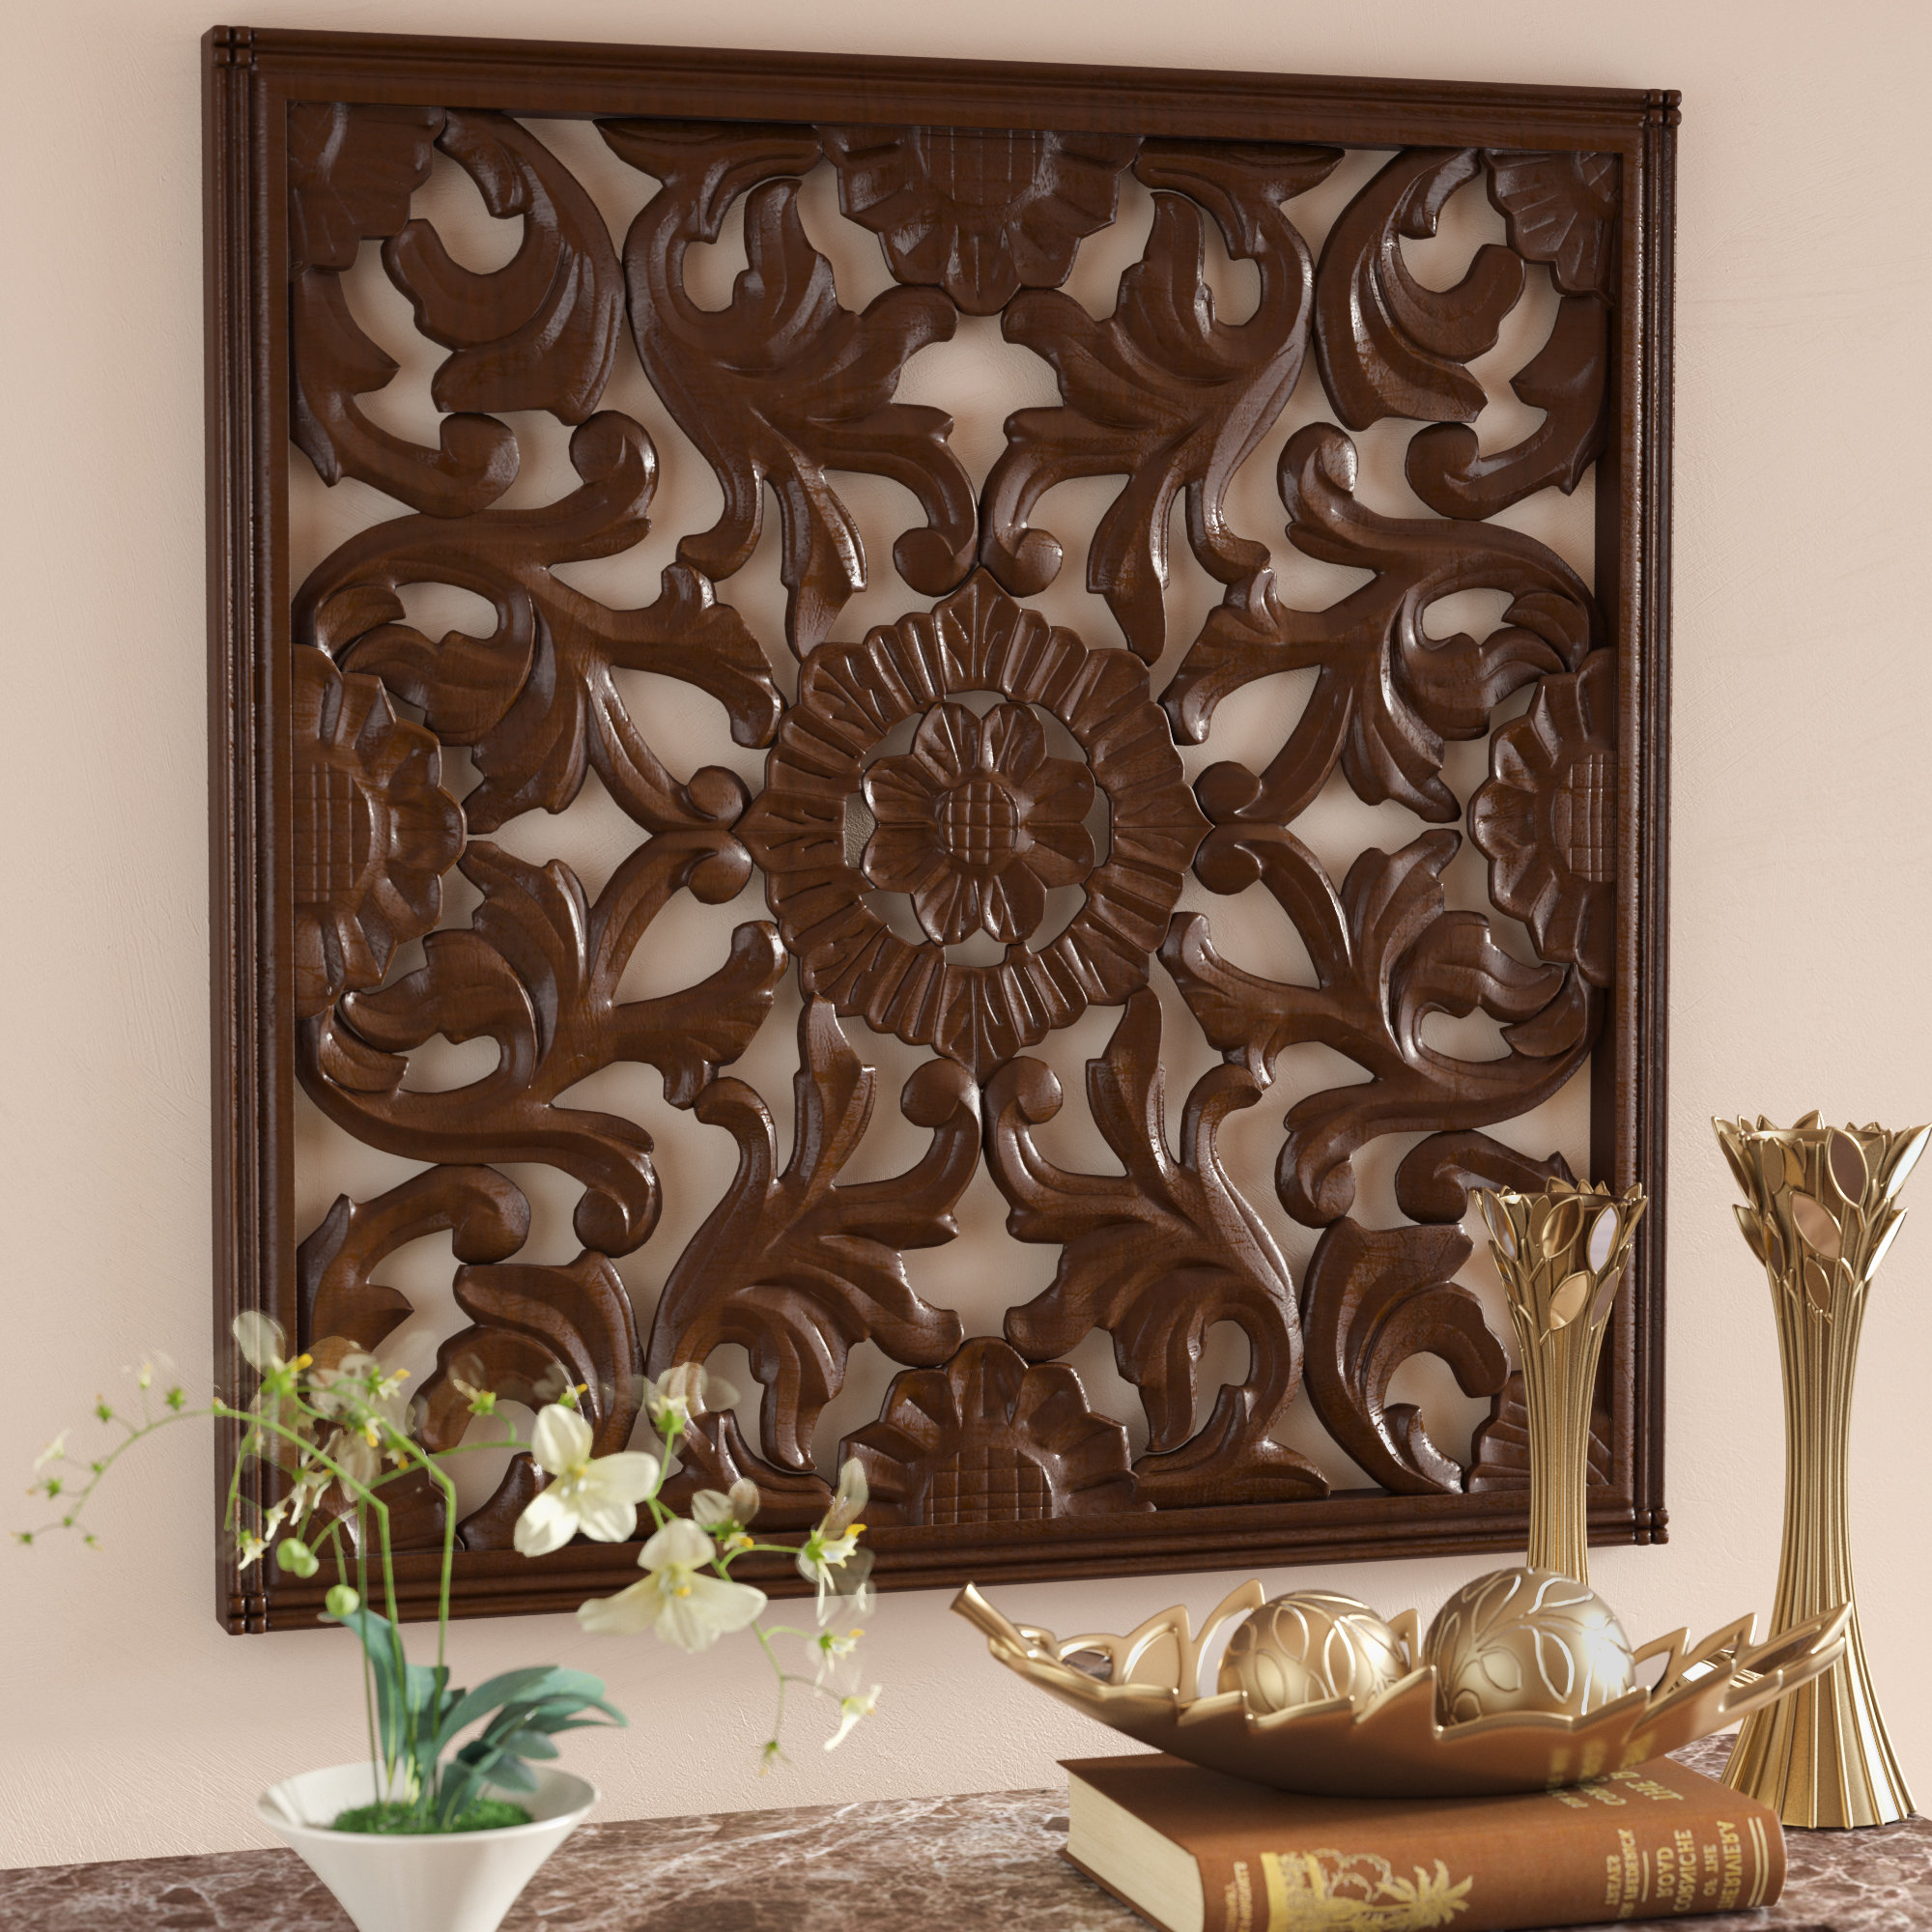 European Medallion Wall Decor With Regard To Recent Astoria Grand Square Handcrafted Medallion Wall Décor & Reviews (View 9 of 20)